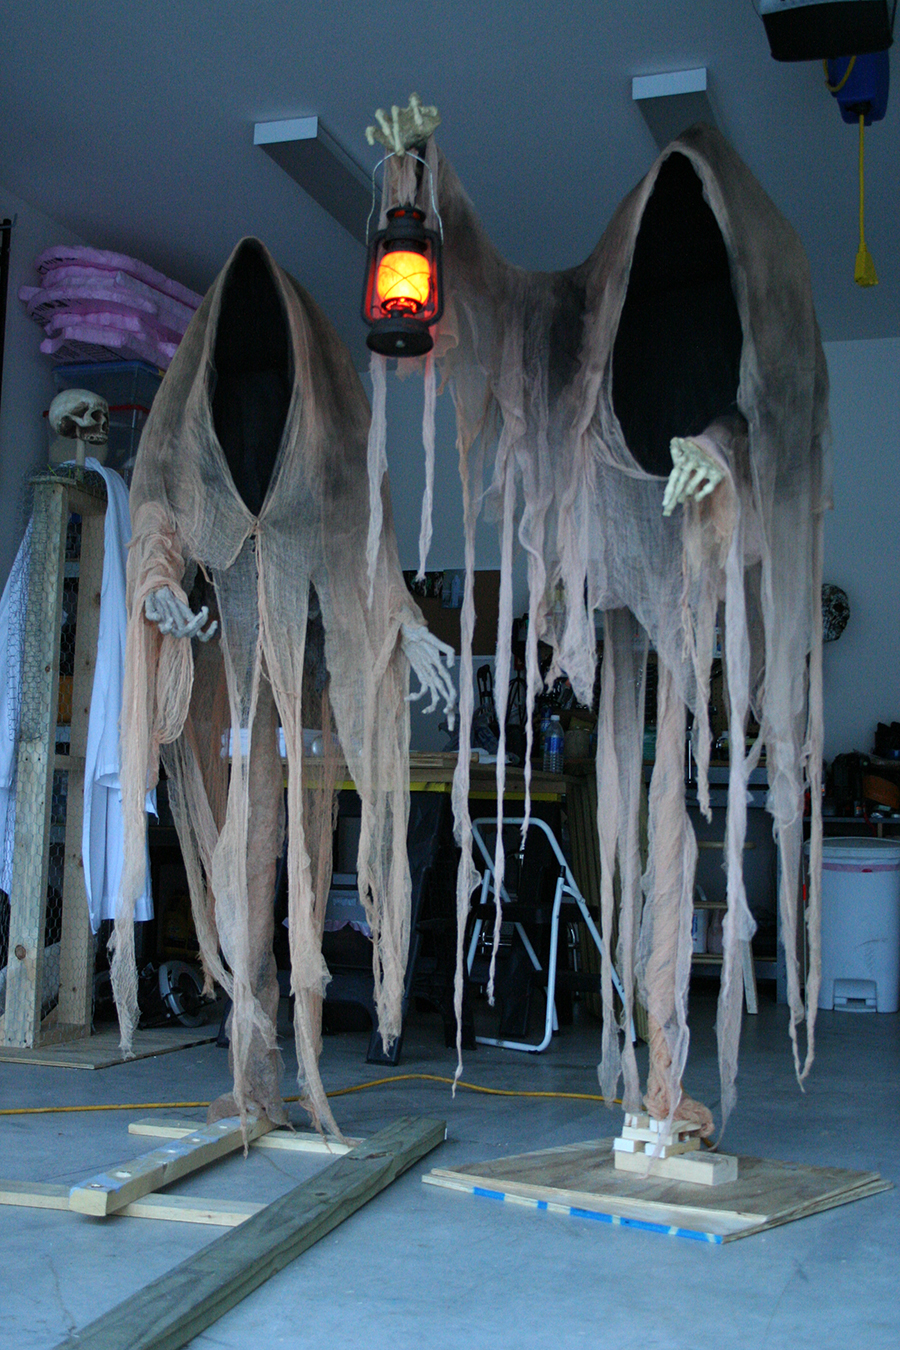 Scary halloween decorations ideas - Cloaked Ghosts Halloween Yard Decoration